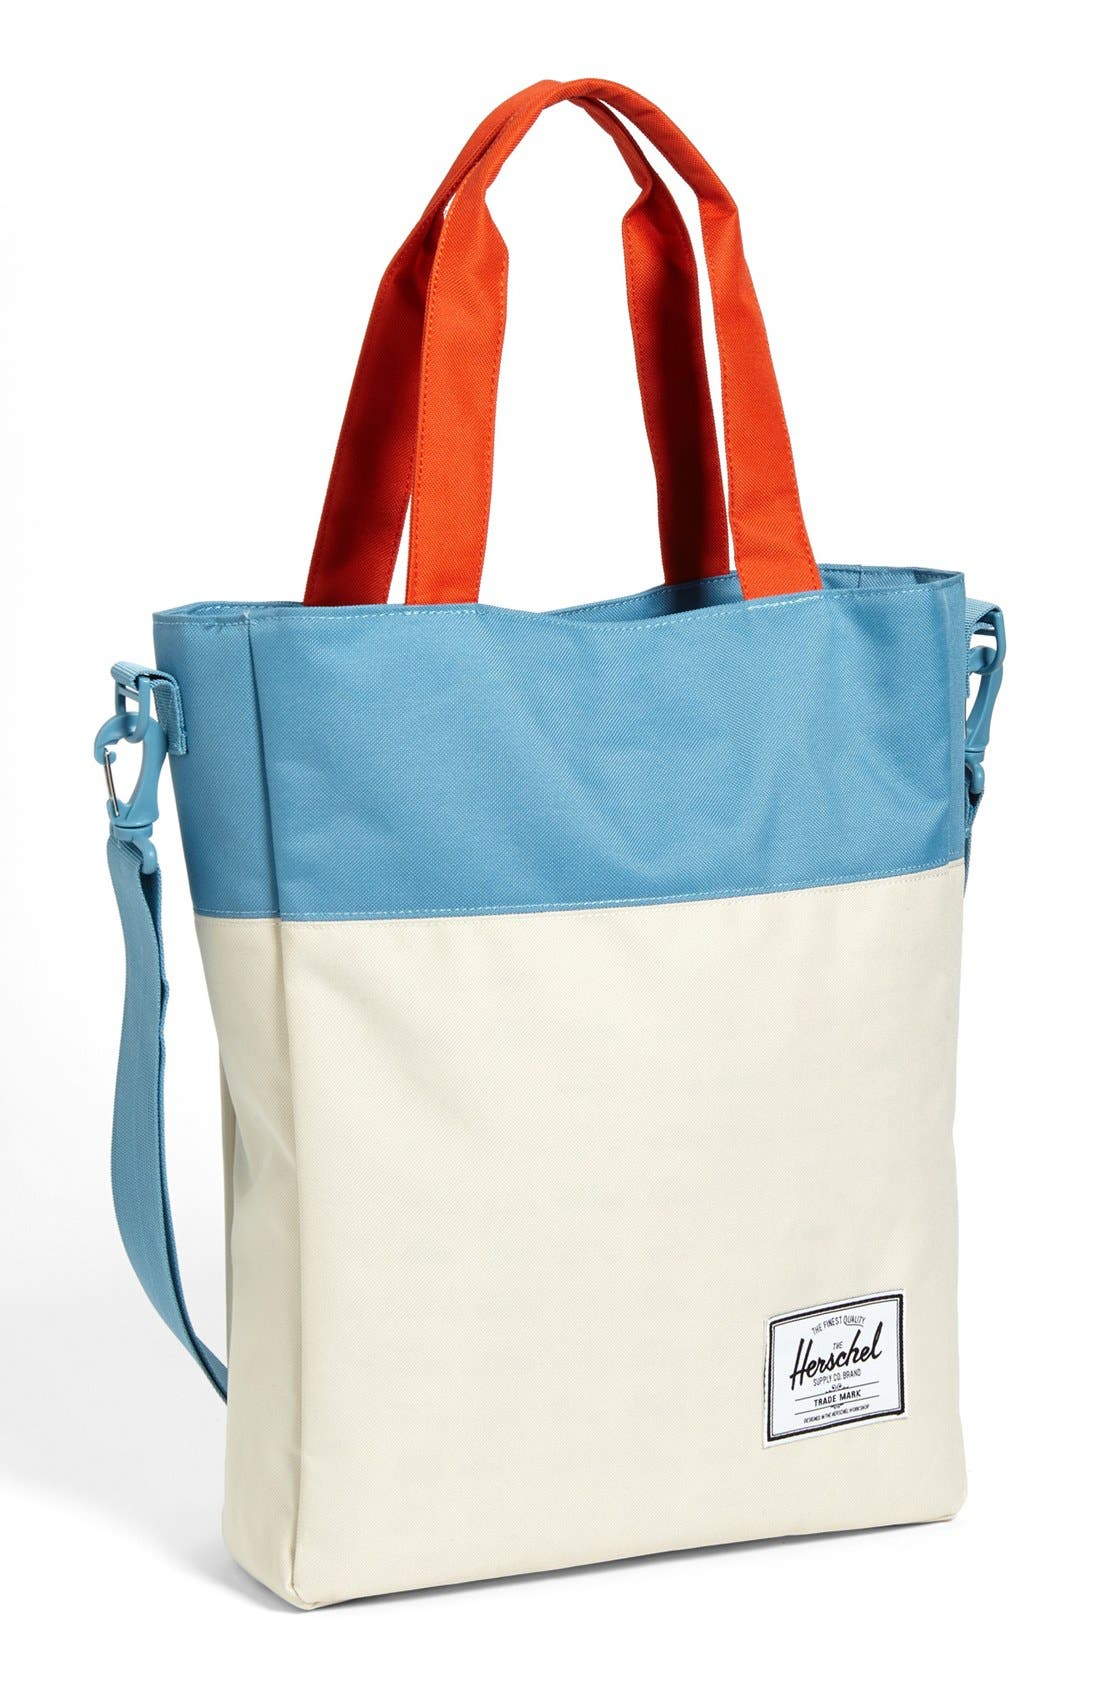 Alternate Image 1 Selected - Herschel Supply Co. 'Pier - Rad Cars with Rad Surfboards Collection' Tote Bag